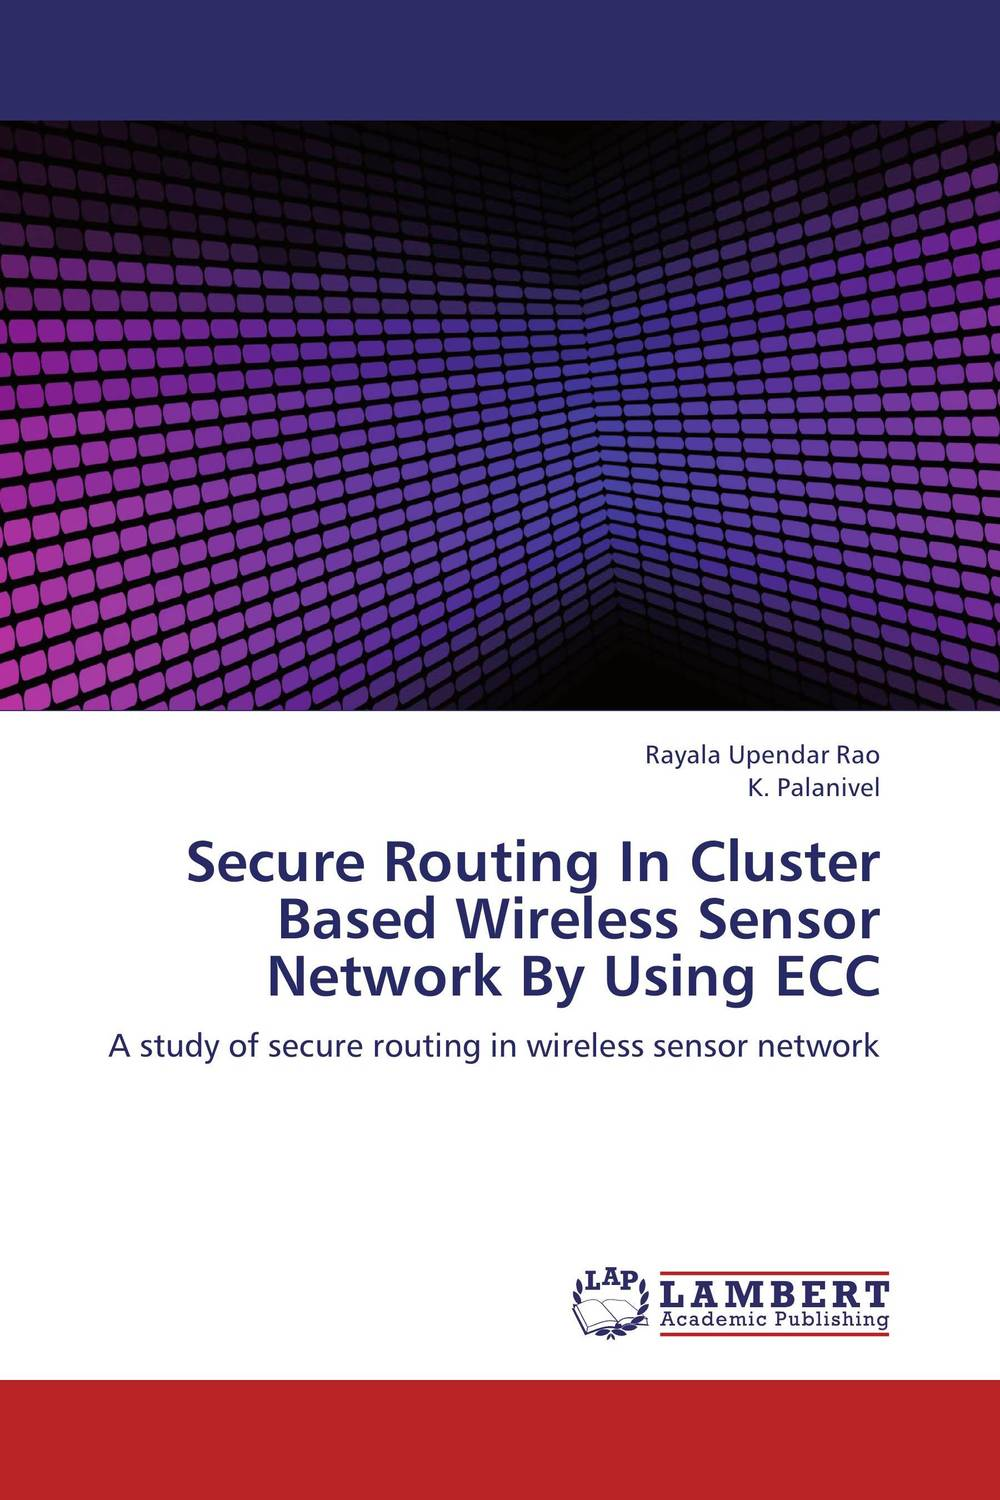 Secure Routing In Cluster Based Wireless Sensor Network By Using ECC lmp c160 replacement projector bare lamp for sony vpl cx11